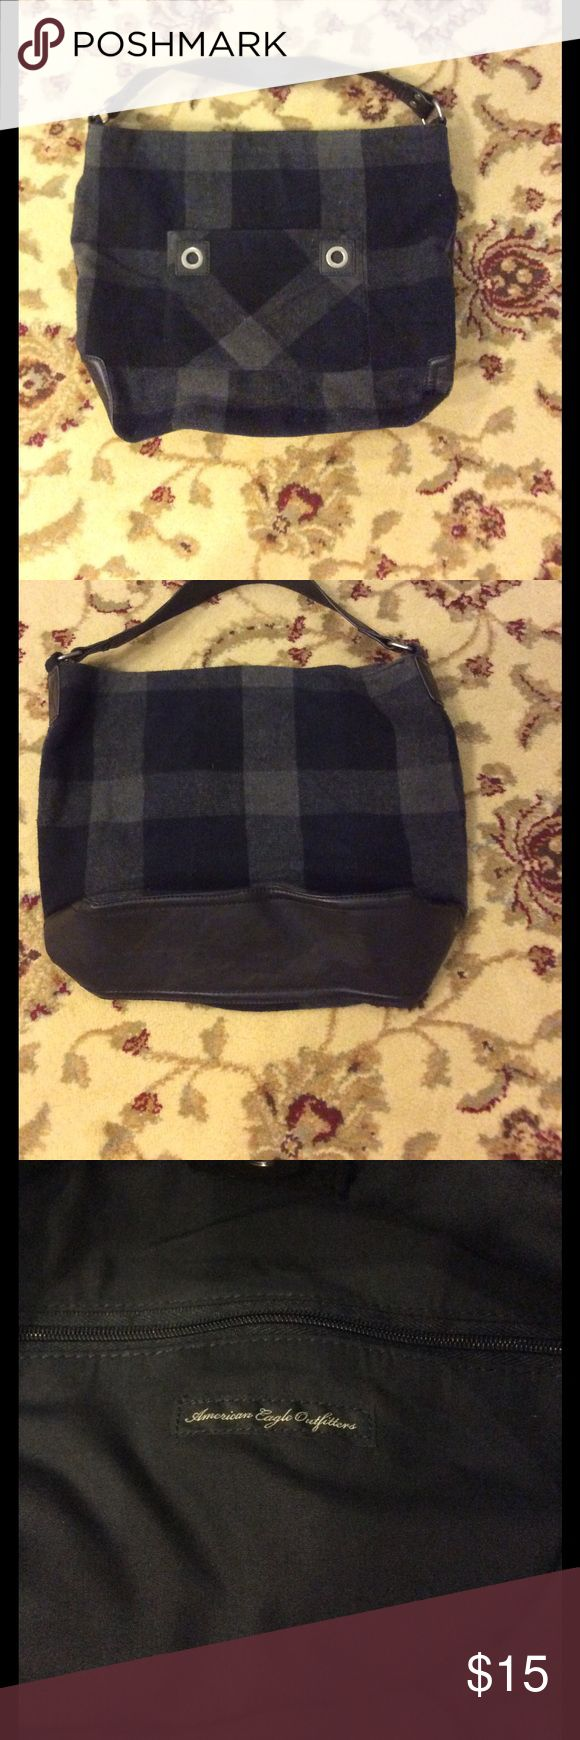 """🦅 American Eagle Outfitters Purse/Tote Bag 🦅 Perfect size bag for a variety of uses!  This new bag features a gray/black plaid flannel pattern fabric, 1 exterior pocket, 2 interior open pockets, 1 interior zippered pocket & faux leather handle & bottom.  Measures 16"""" x 14"""" x 4 1/2"""" with a 16 1/2"""" handle. American Eagle Outfitters Bags Totes"""